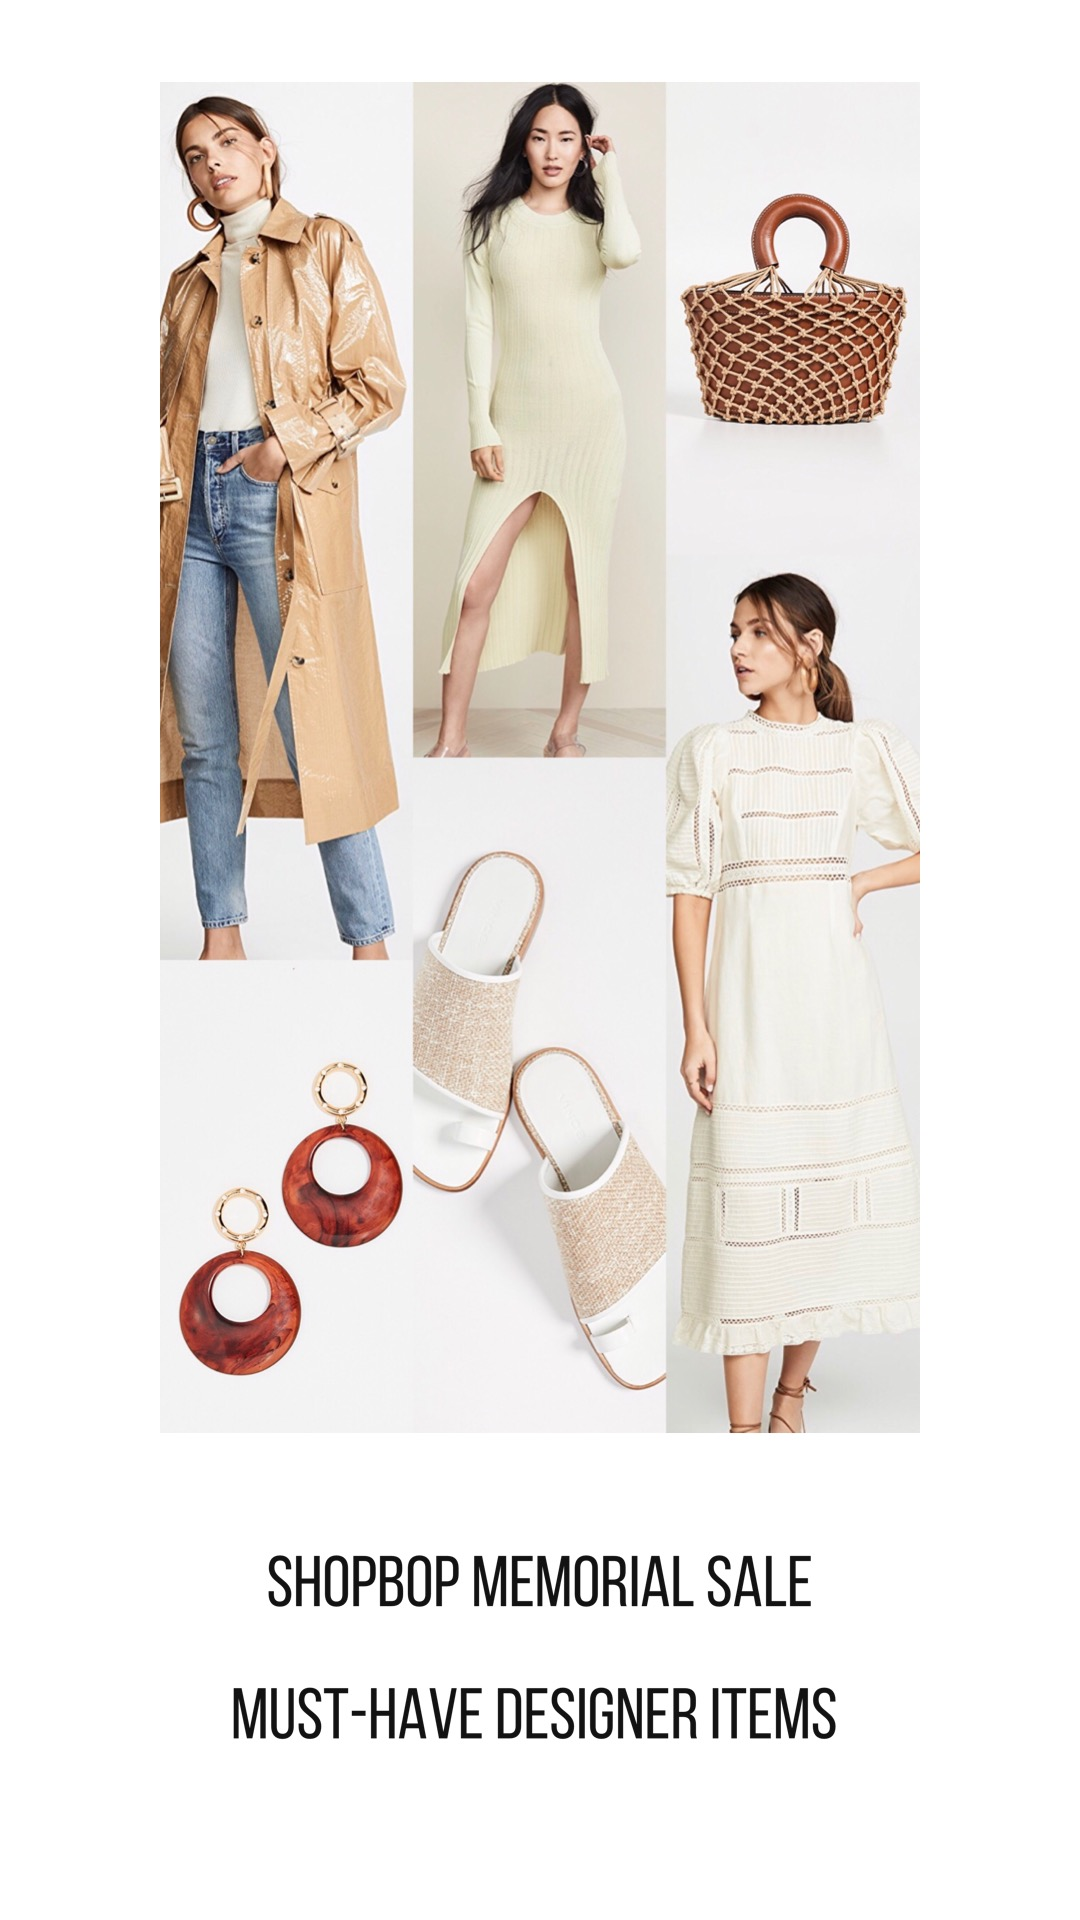 Best of Shopbop memorial sale selection under $250 and investment pieces on sale - Shopbop sale designer under $250